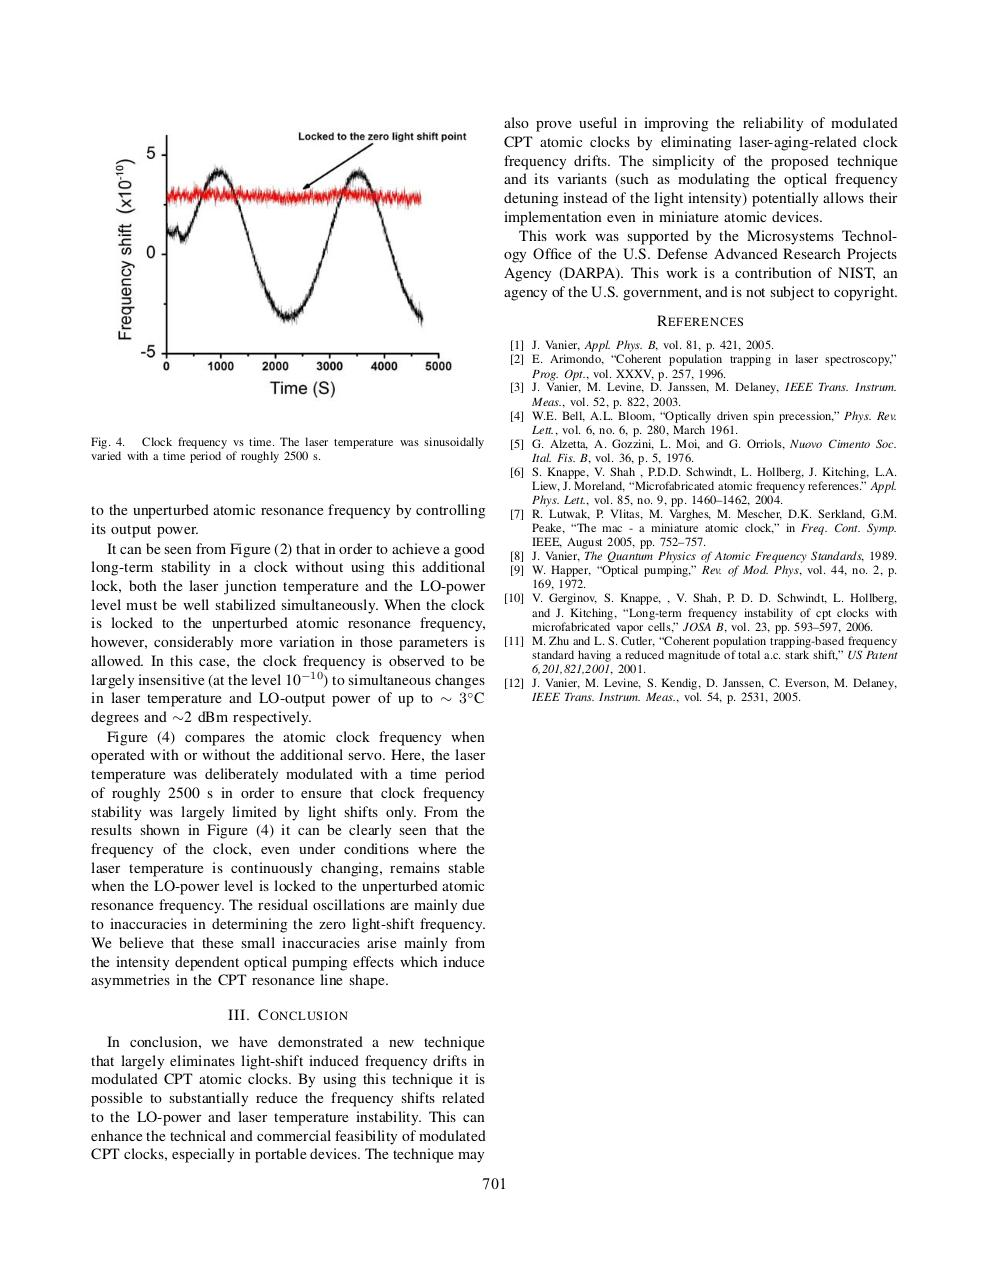 Active light shift stabilization in modulated CPT clocks.pdf - page 3/3